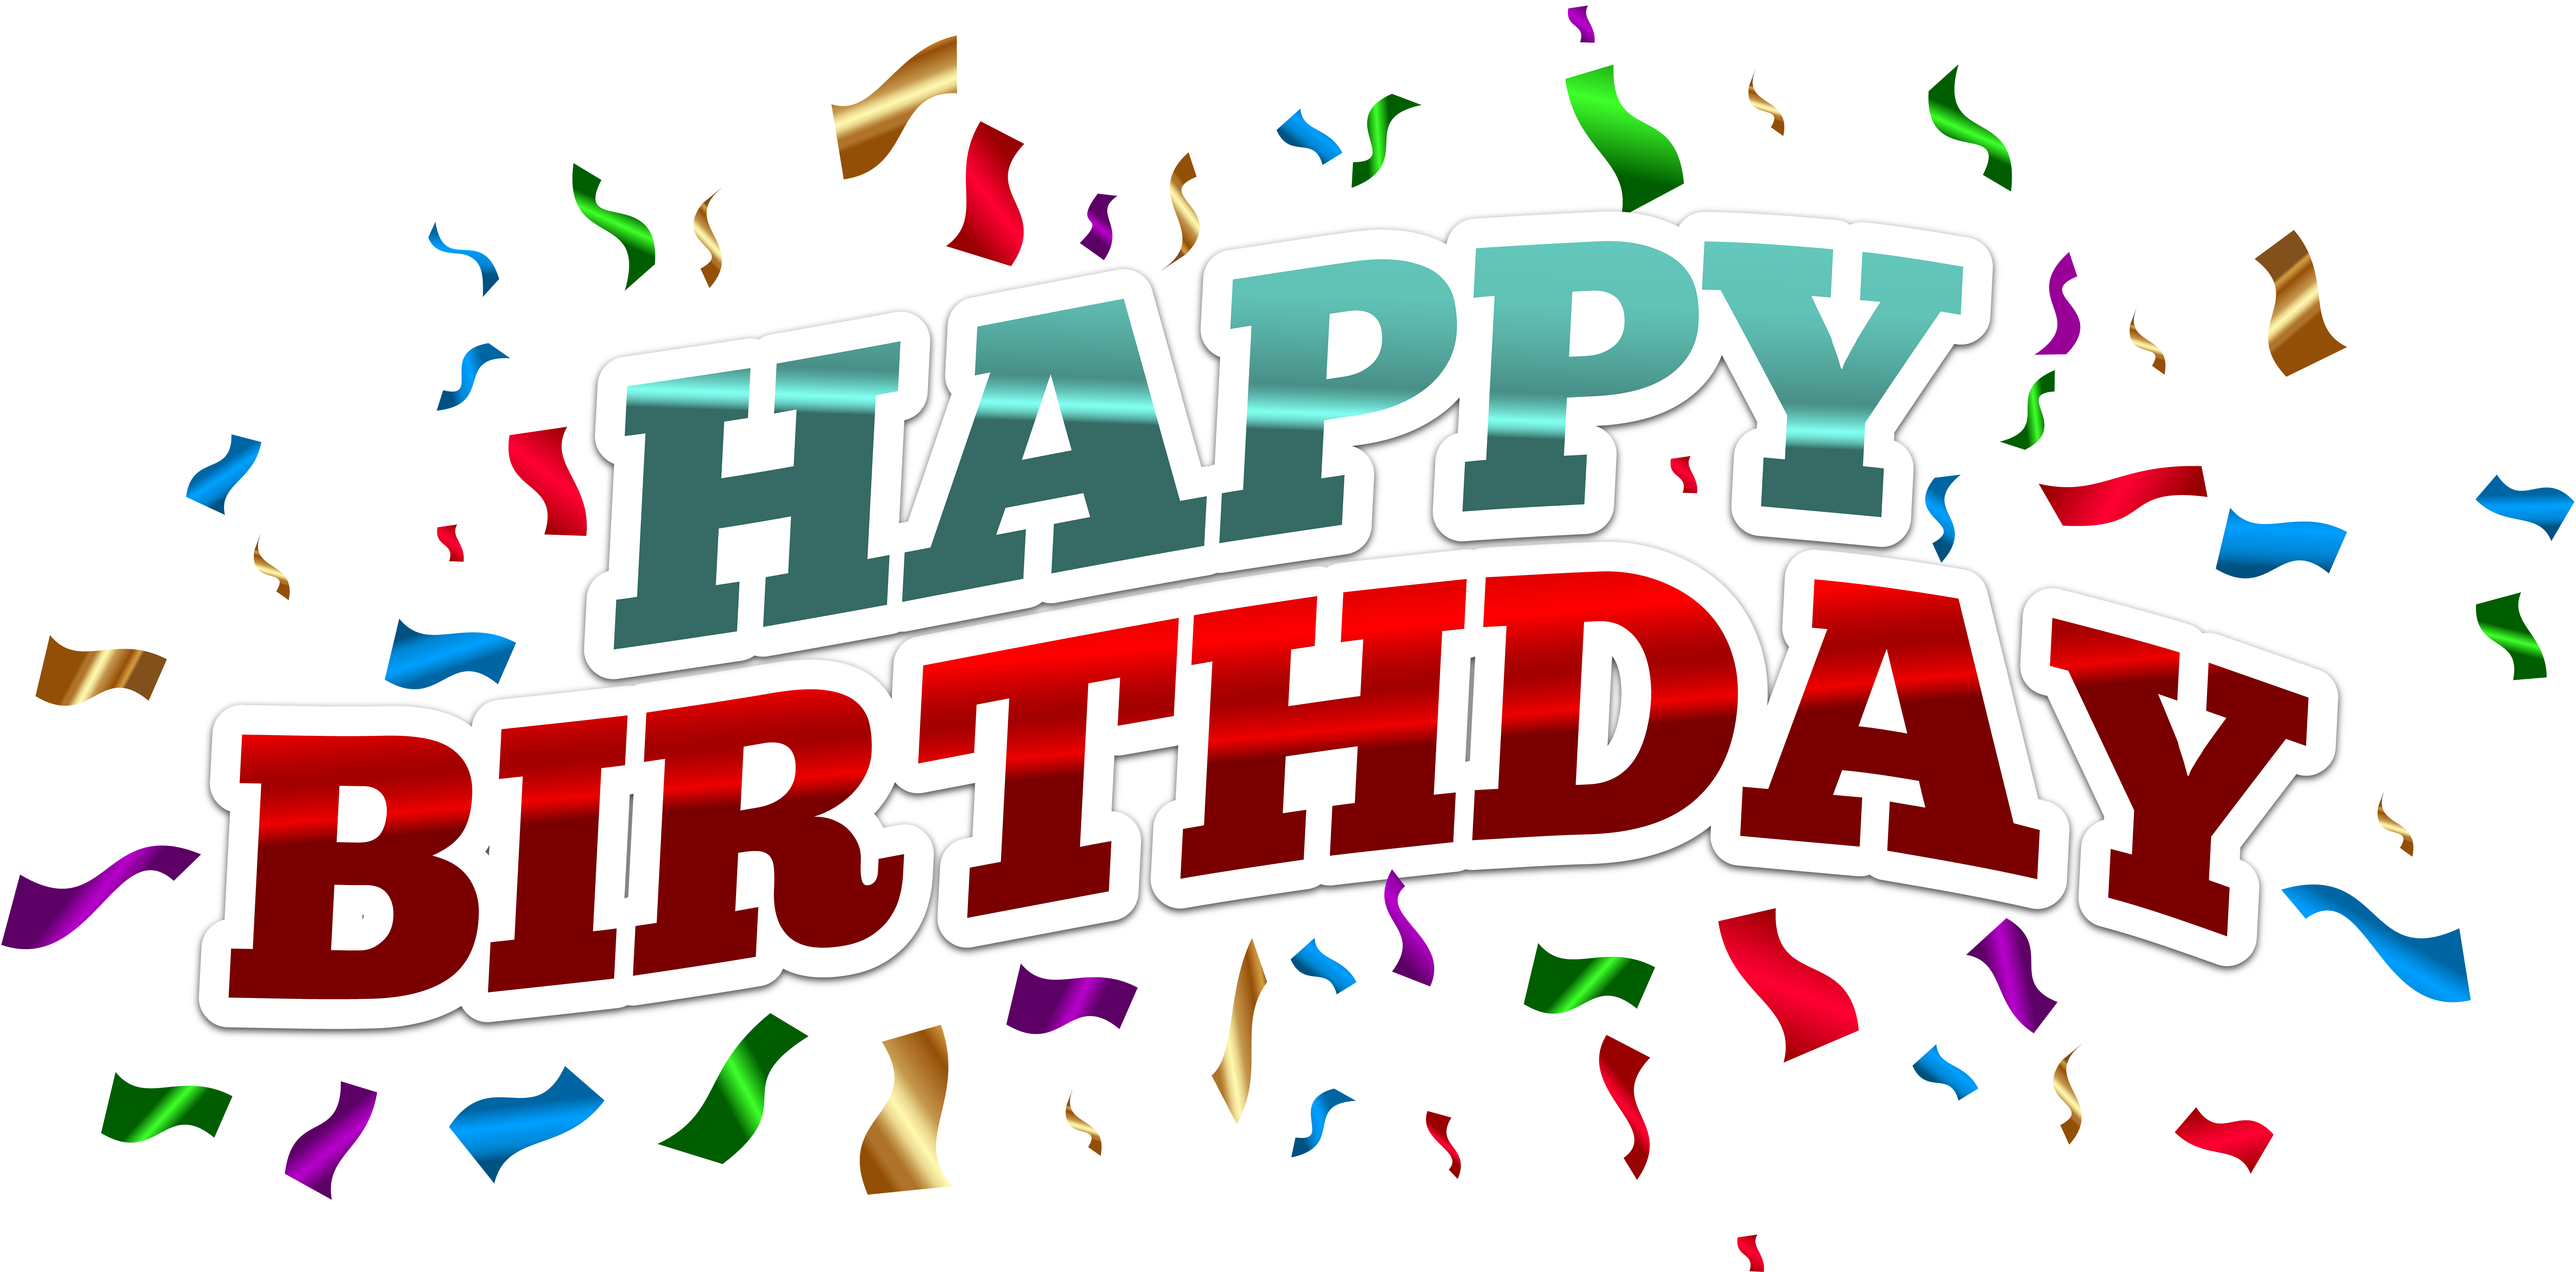 Colorful Happy Birthday Png Clip Art Image Gallery Yopriceville High Quality Images Happy Birthday Clip Art Cool Happy Birthday Images Happy Birthday Clip